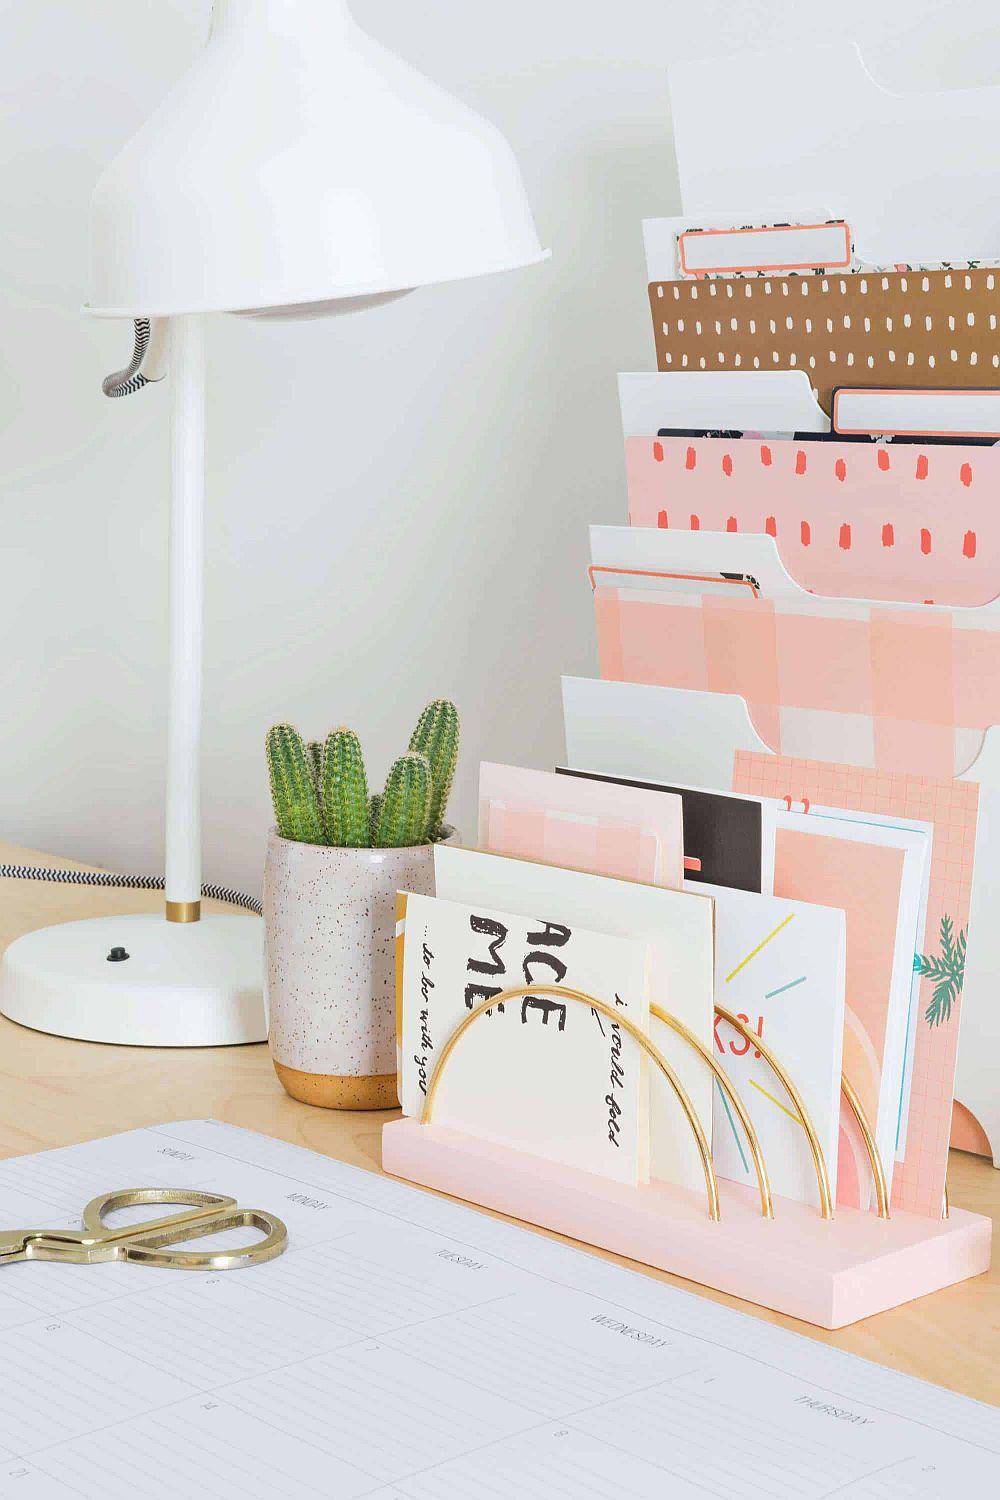 1560528387 72 20 diy desk organizer ideas and projects to try - 20 DIY Desk Organizer Ideas and Projects to Try